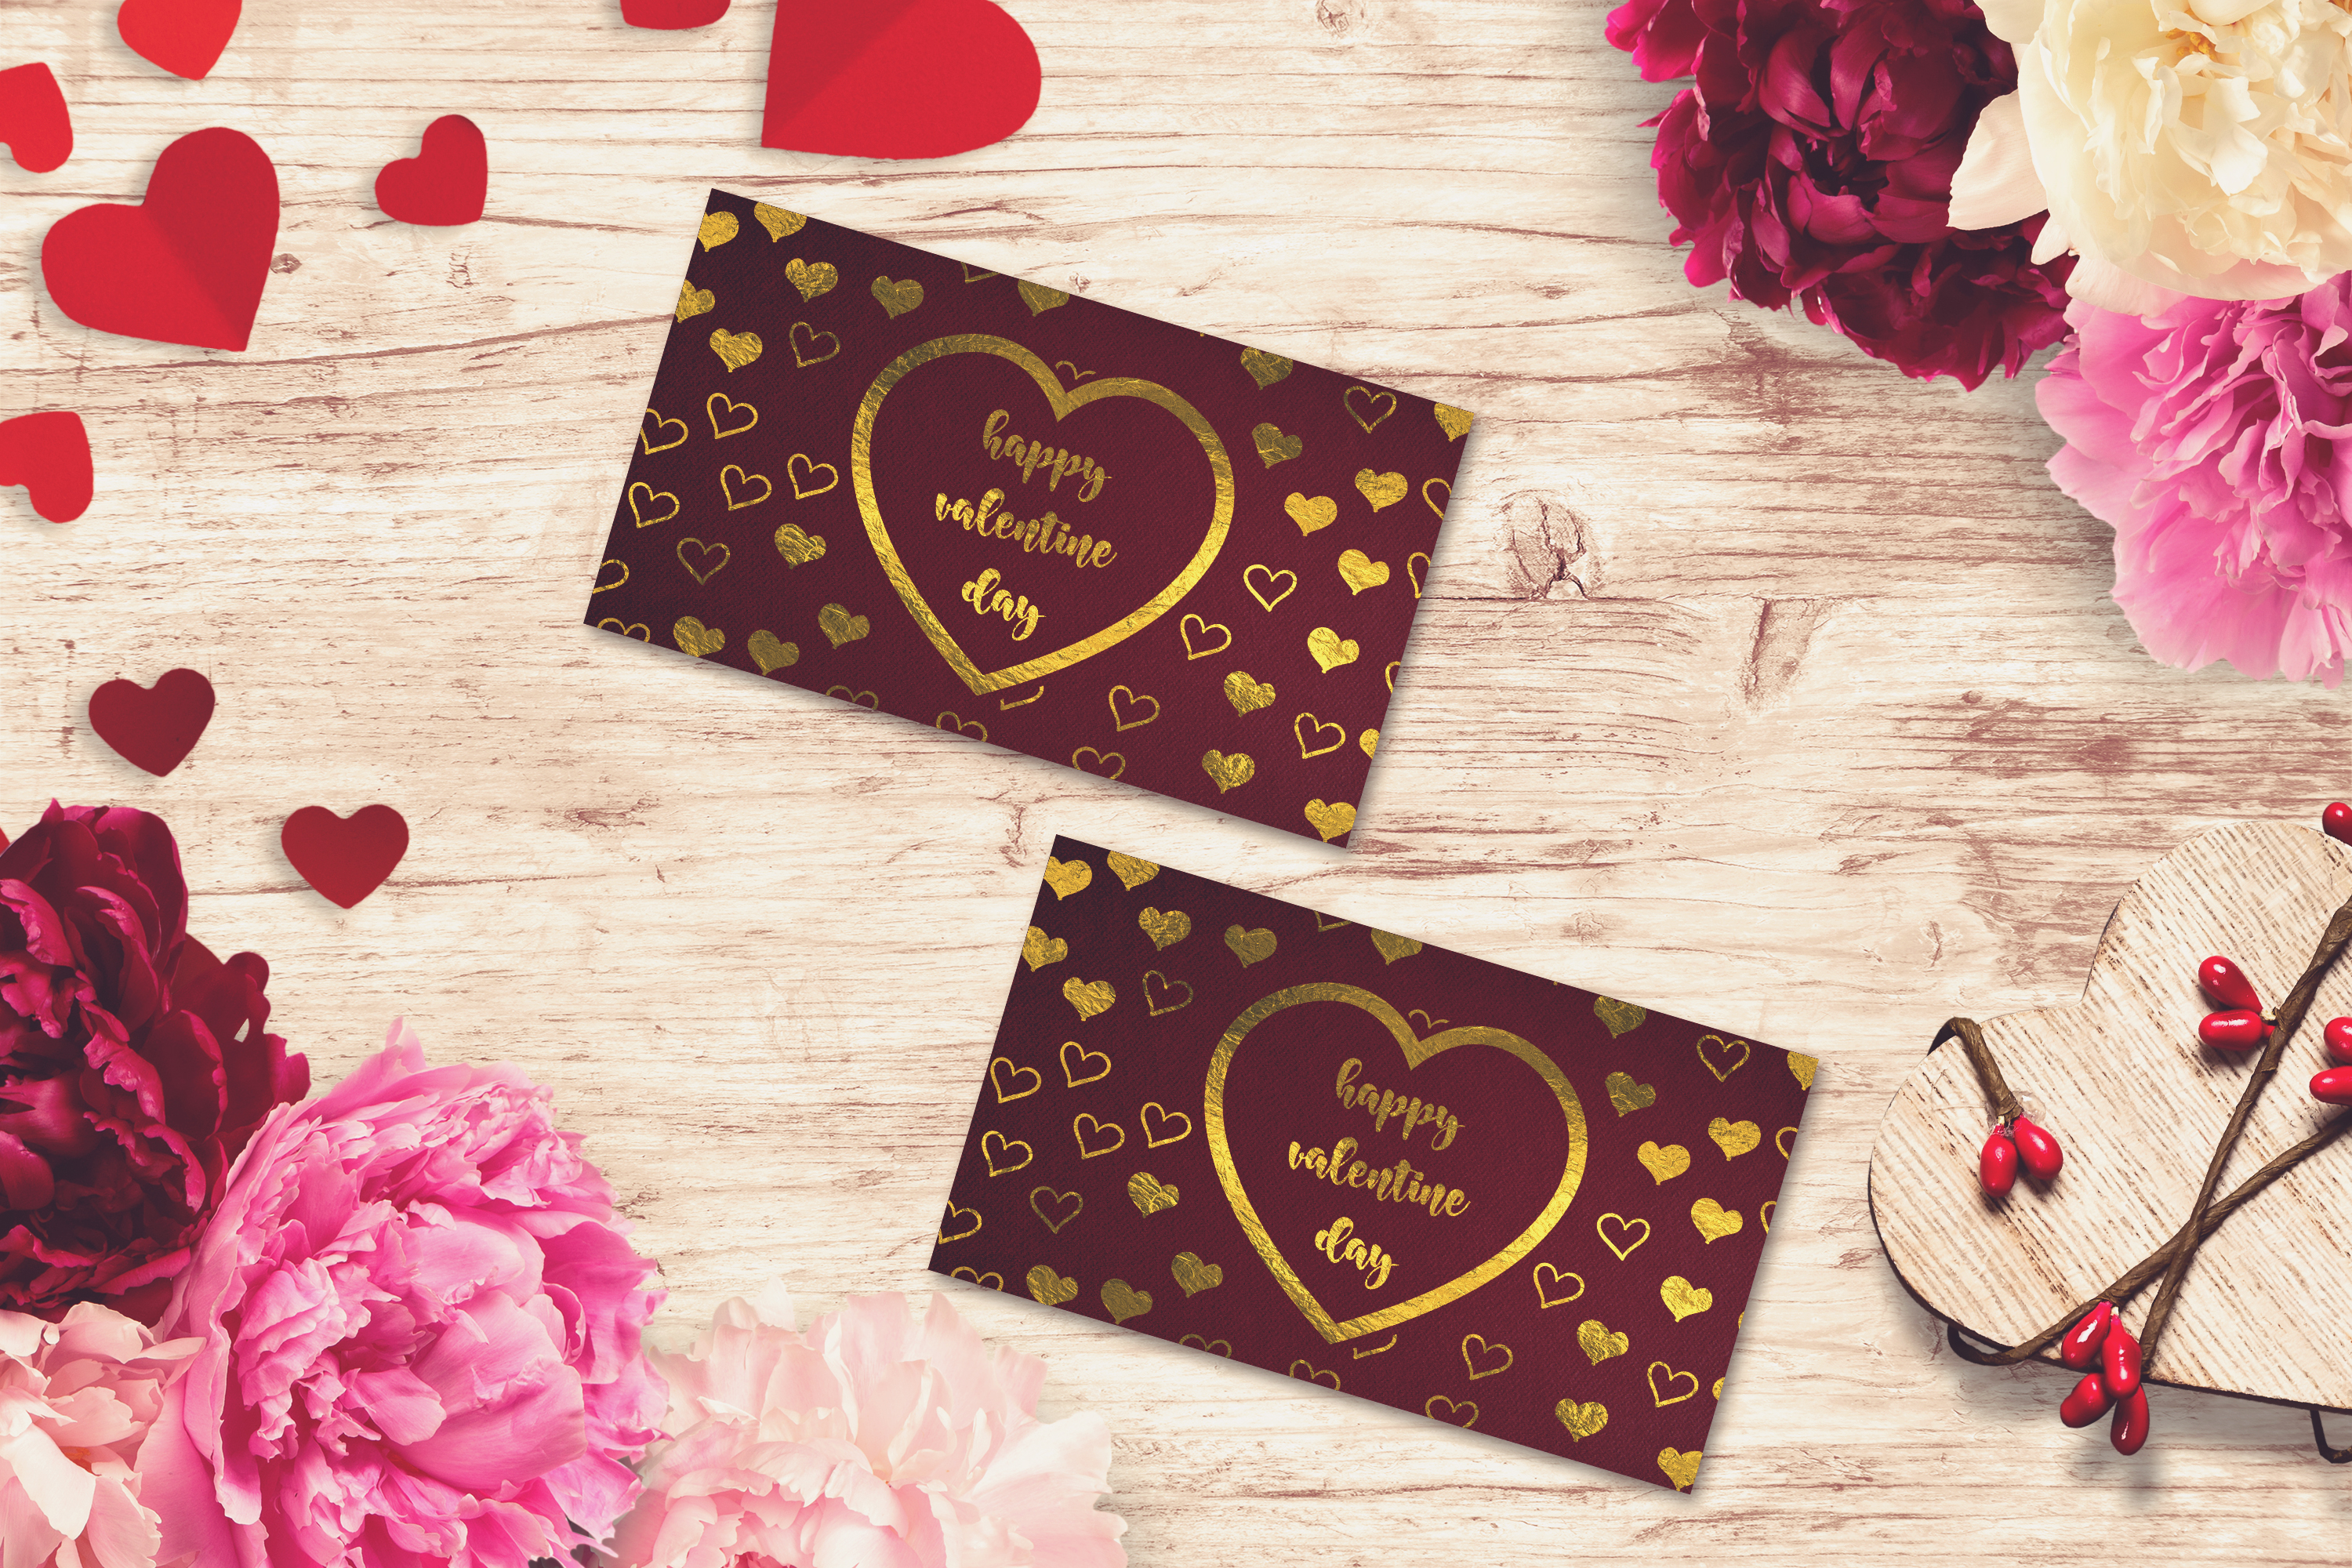 Valentine Card Mock-up #13 example image 1